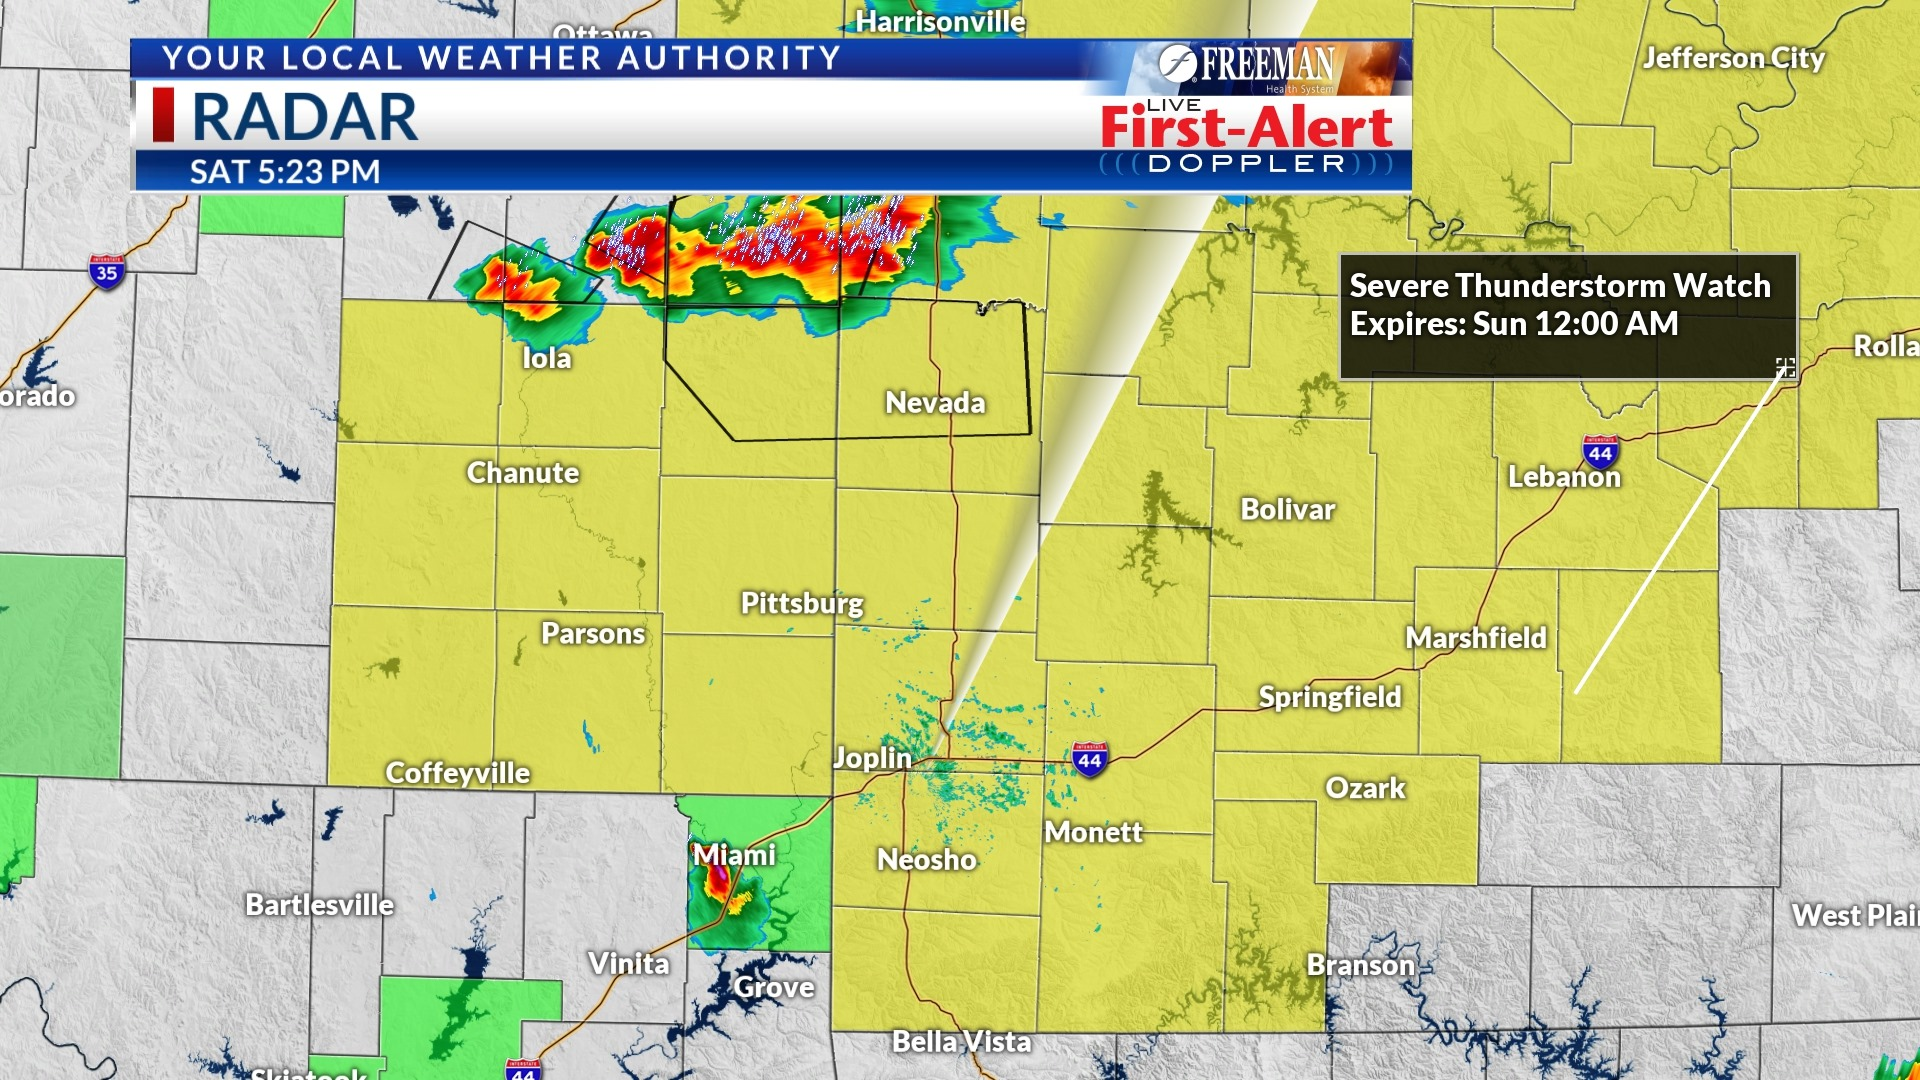 A Severe Thunderstorm Watch is in effect for SW Missouri and